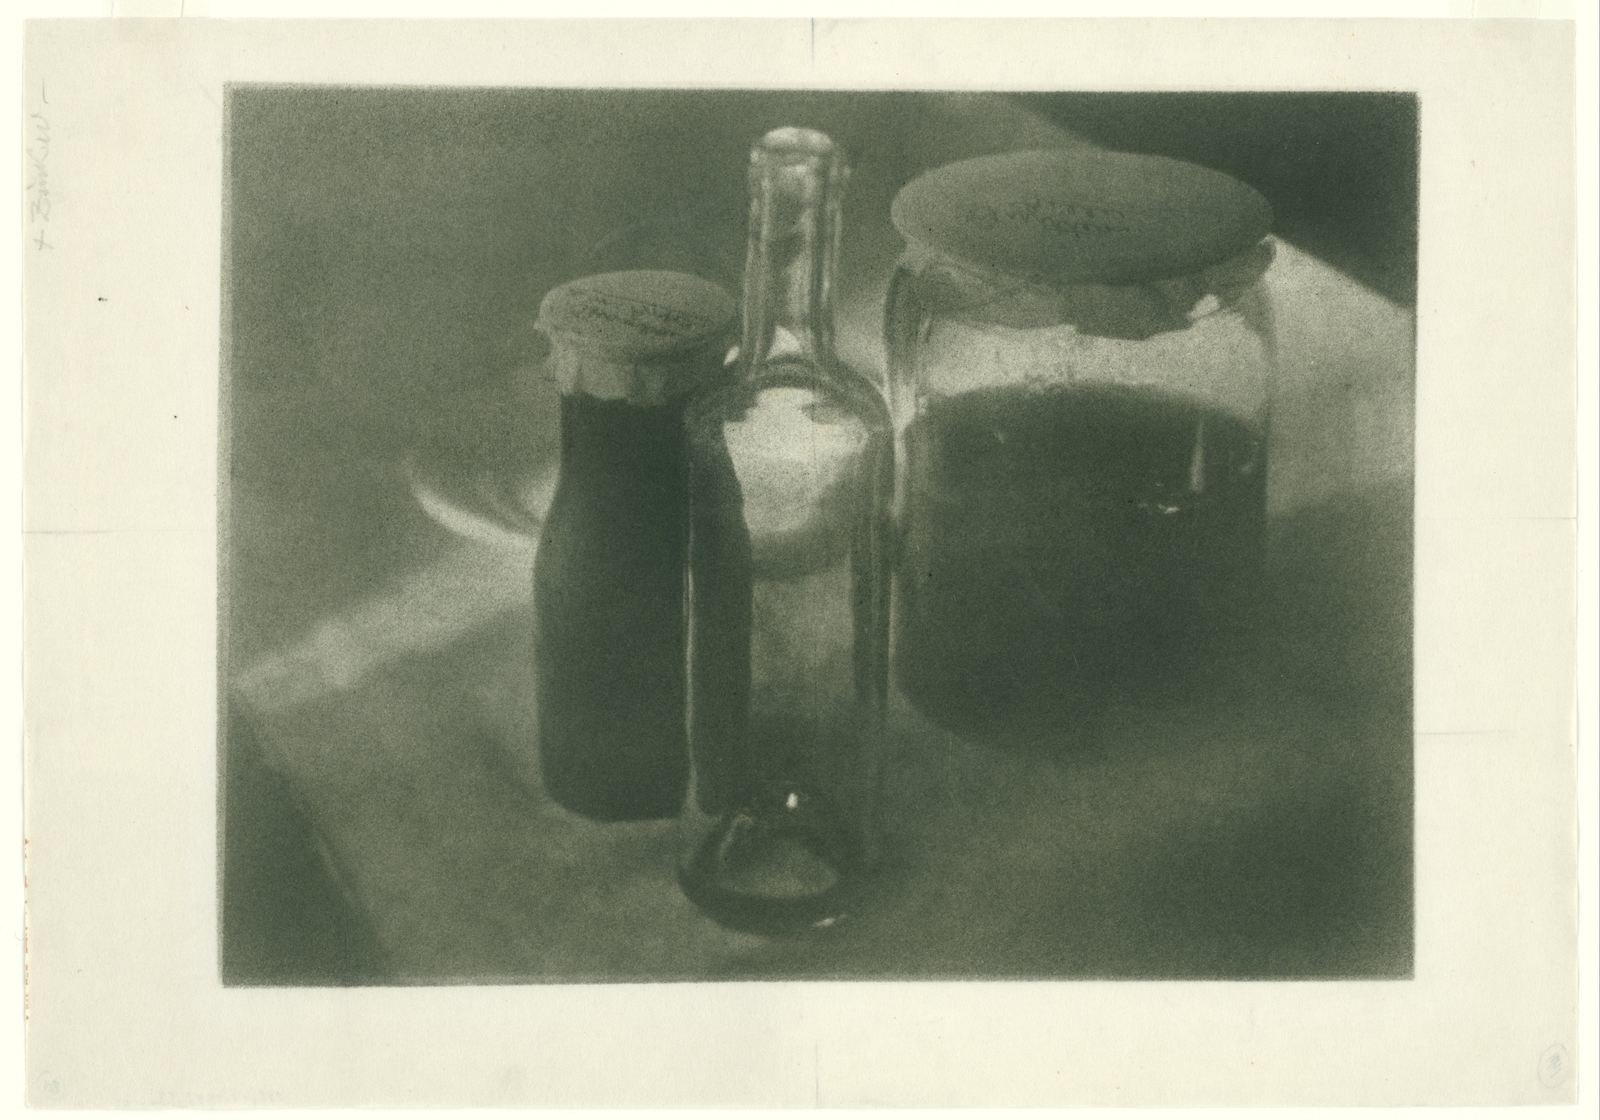 Still life with bottle and jars, c. 1900-1910, Heinrich Kühn, Rijksmuseum, Public Domain Mark